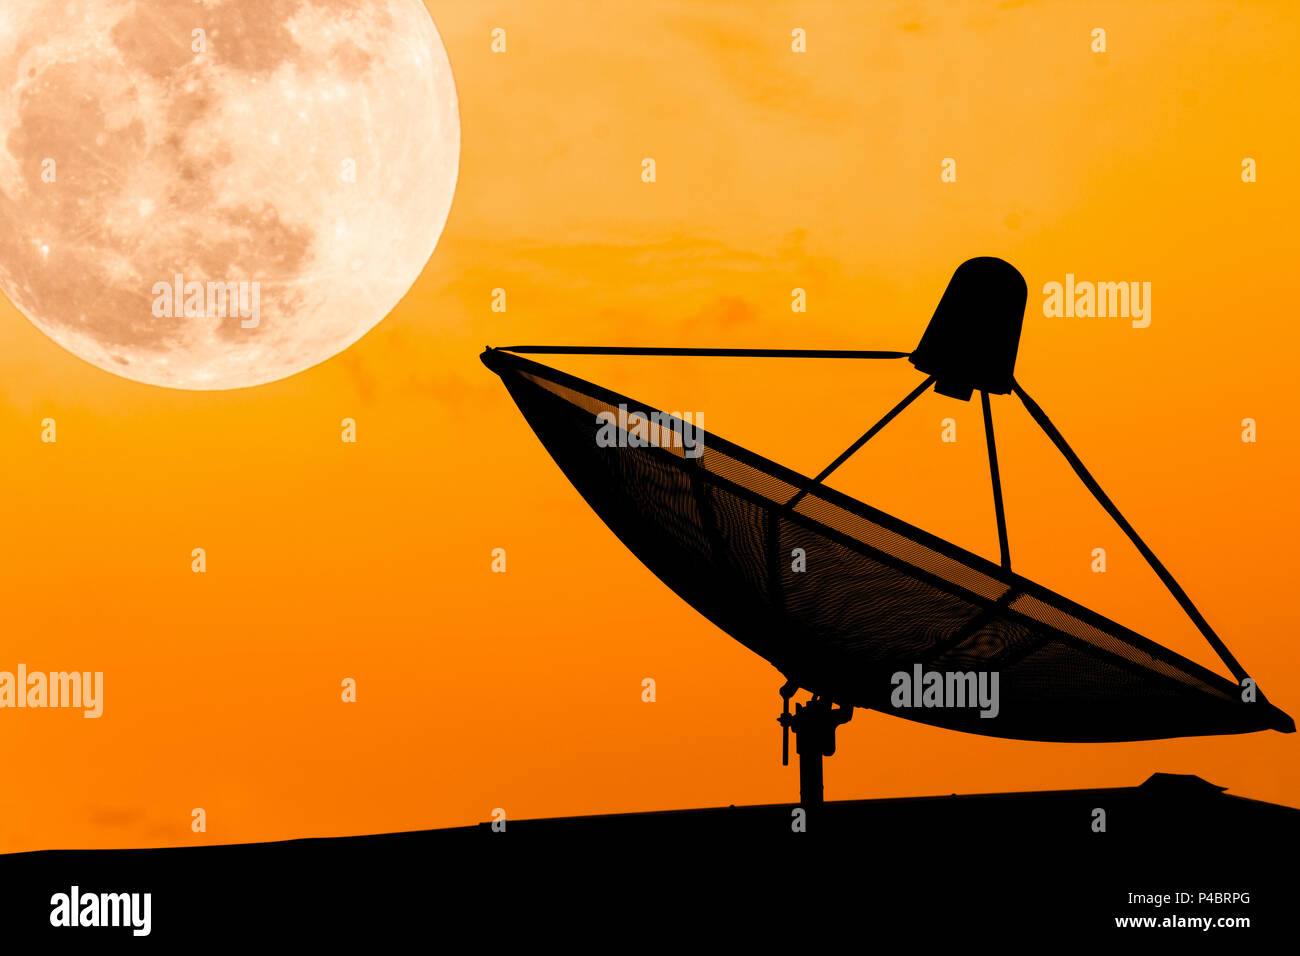 Communication satellite dish on the roof with supermoon sky background, twilight time, silhouette orange background, effect light, with copy space. Stock Photo